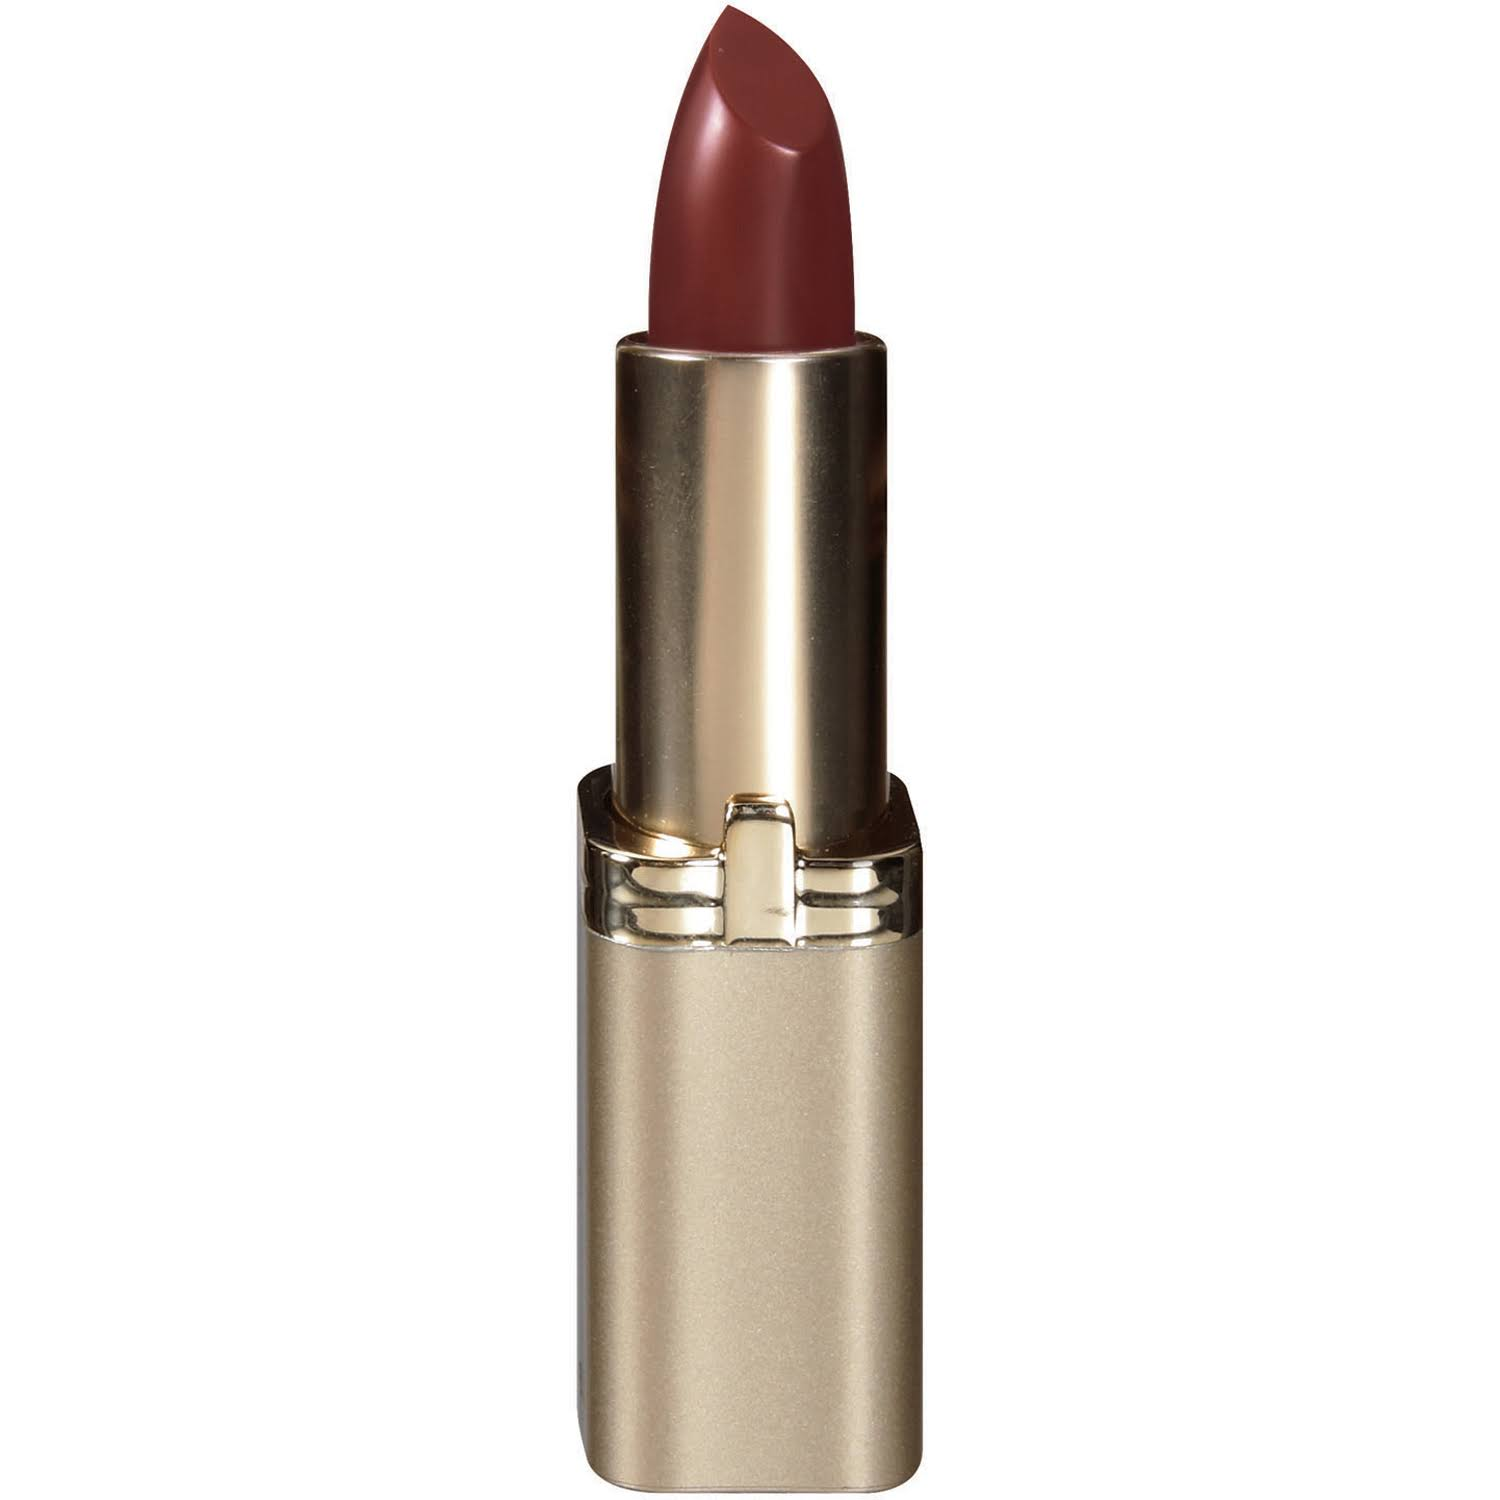 L'Oreal Paris Colour Riche Lipstick - 839 Cinnamon Toast, 0.13oz